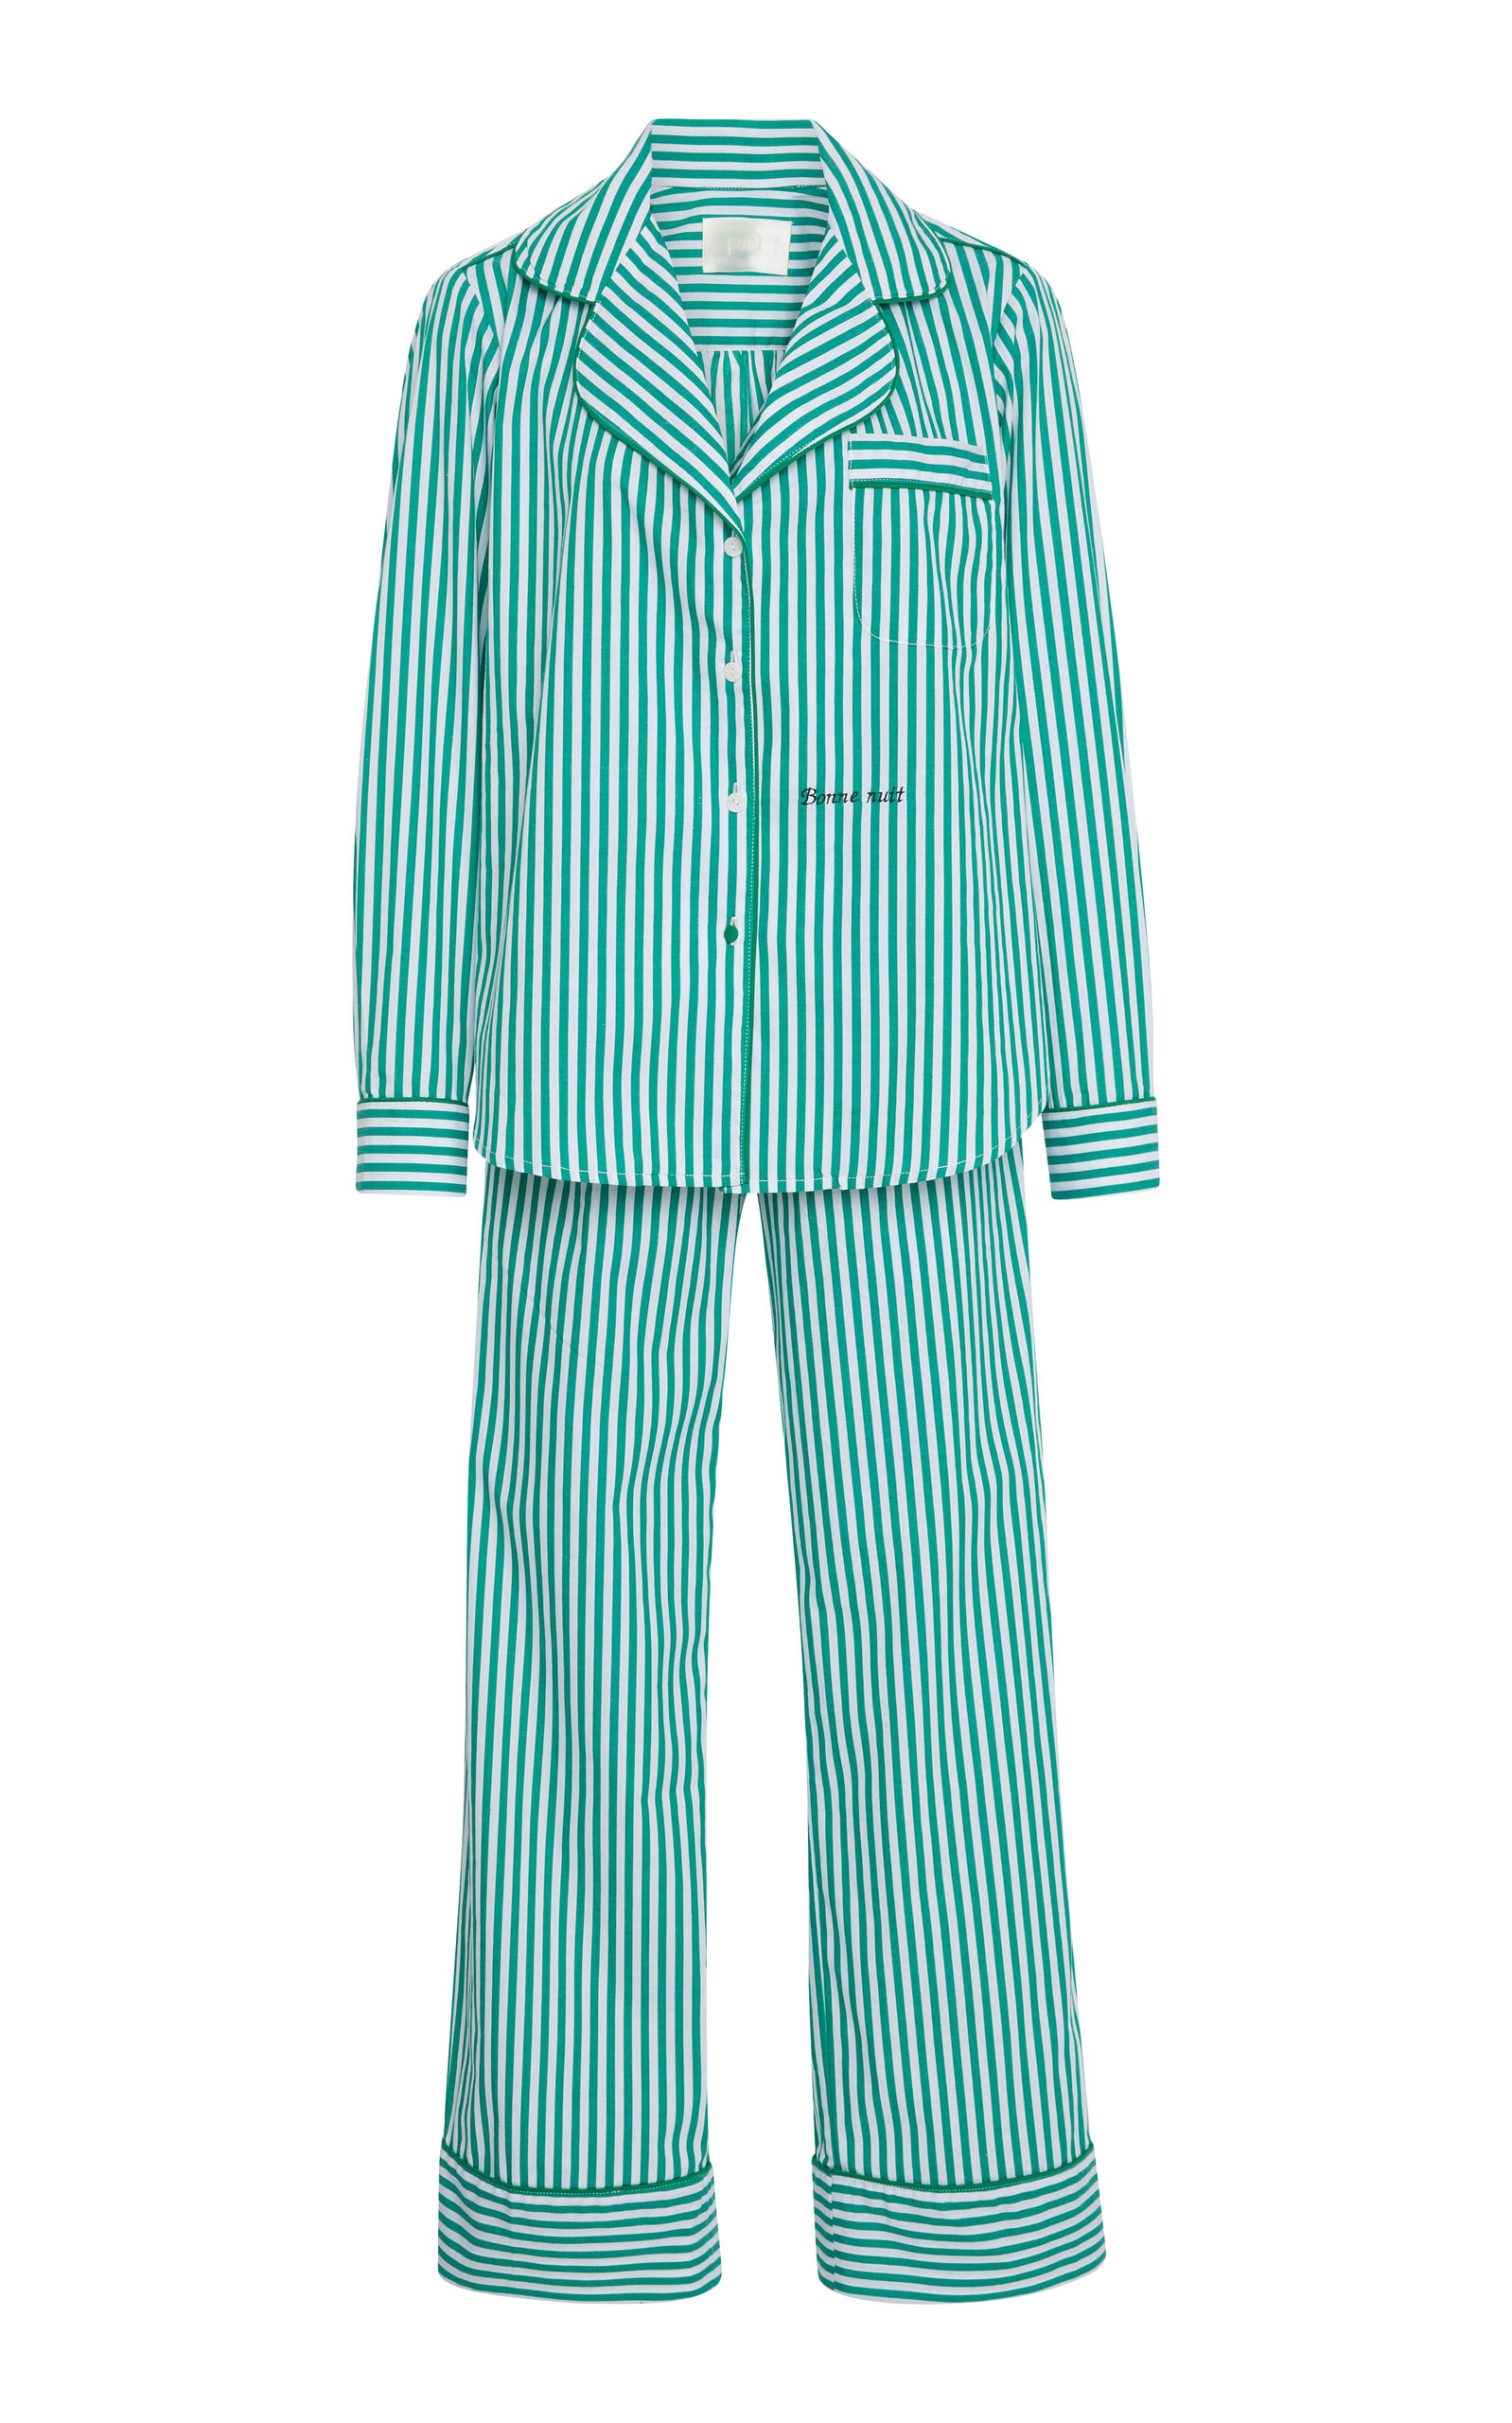 PIU LIFESTYLE CUSTOM THE DANIELLA LONG COTTON PAJAMA SET